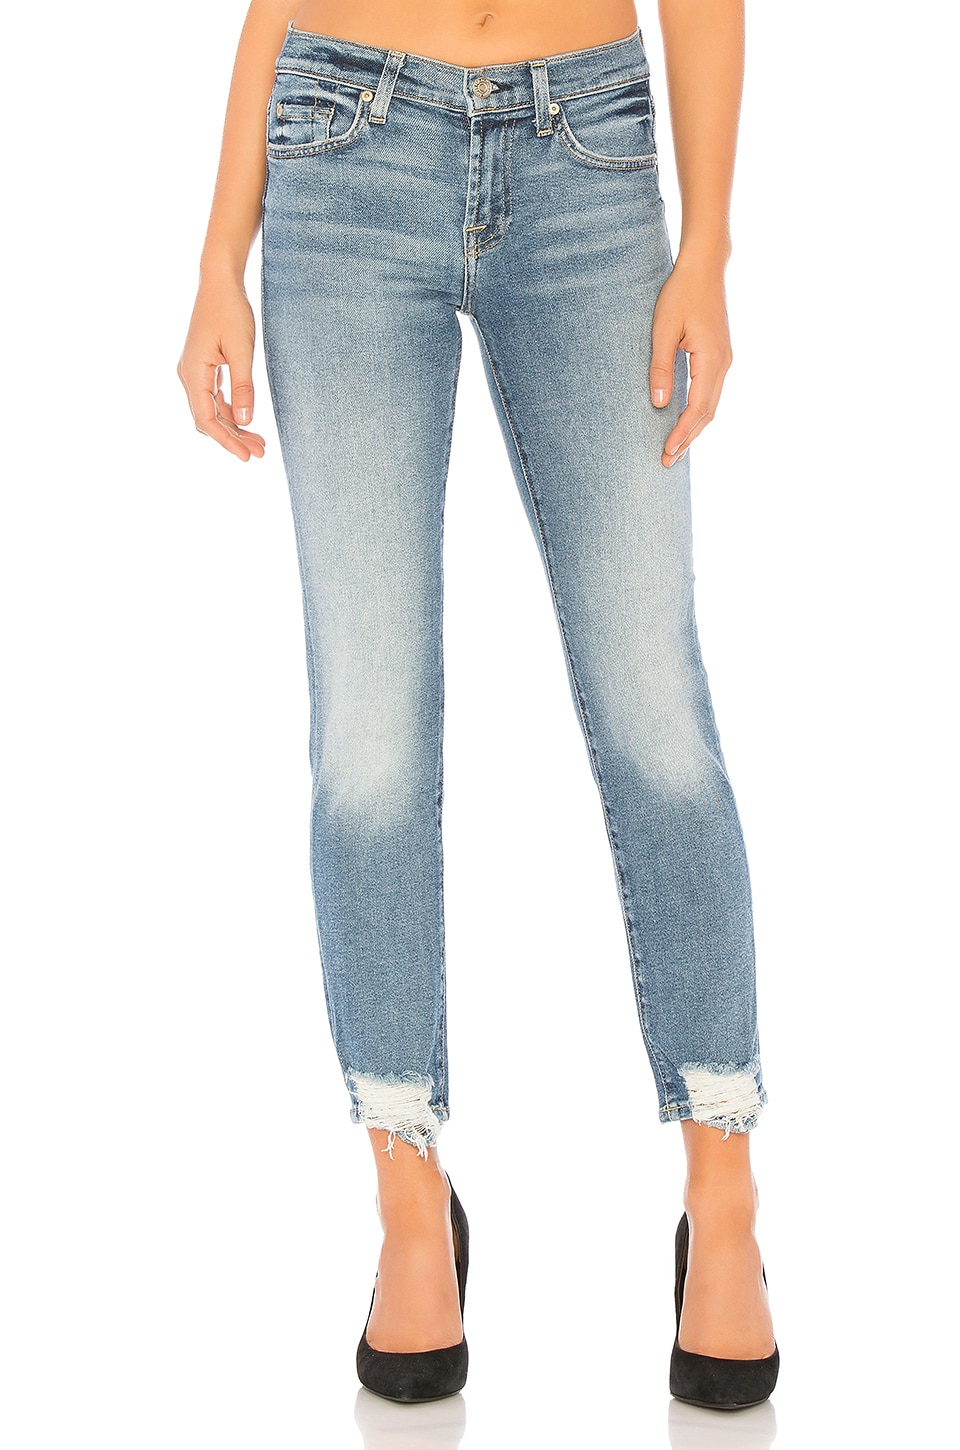 7 For All Mankind Roxanne Ankle in Luxe Vintage Muse